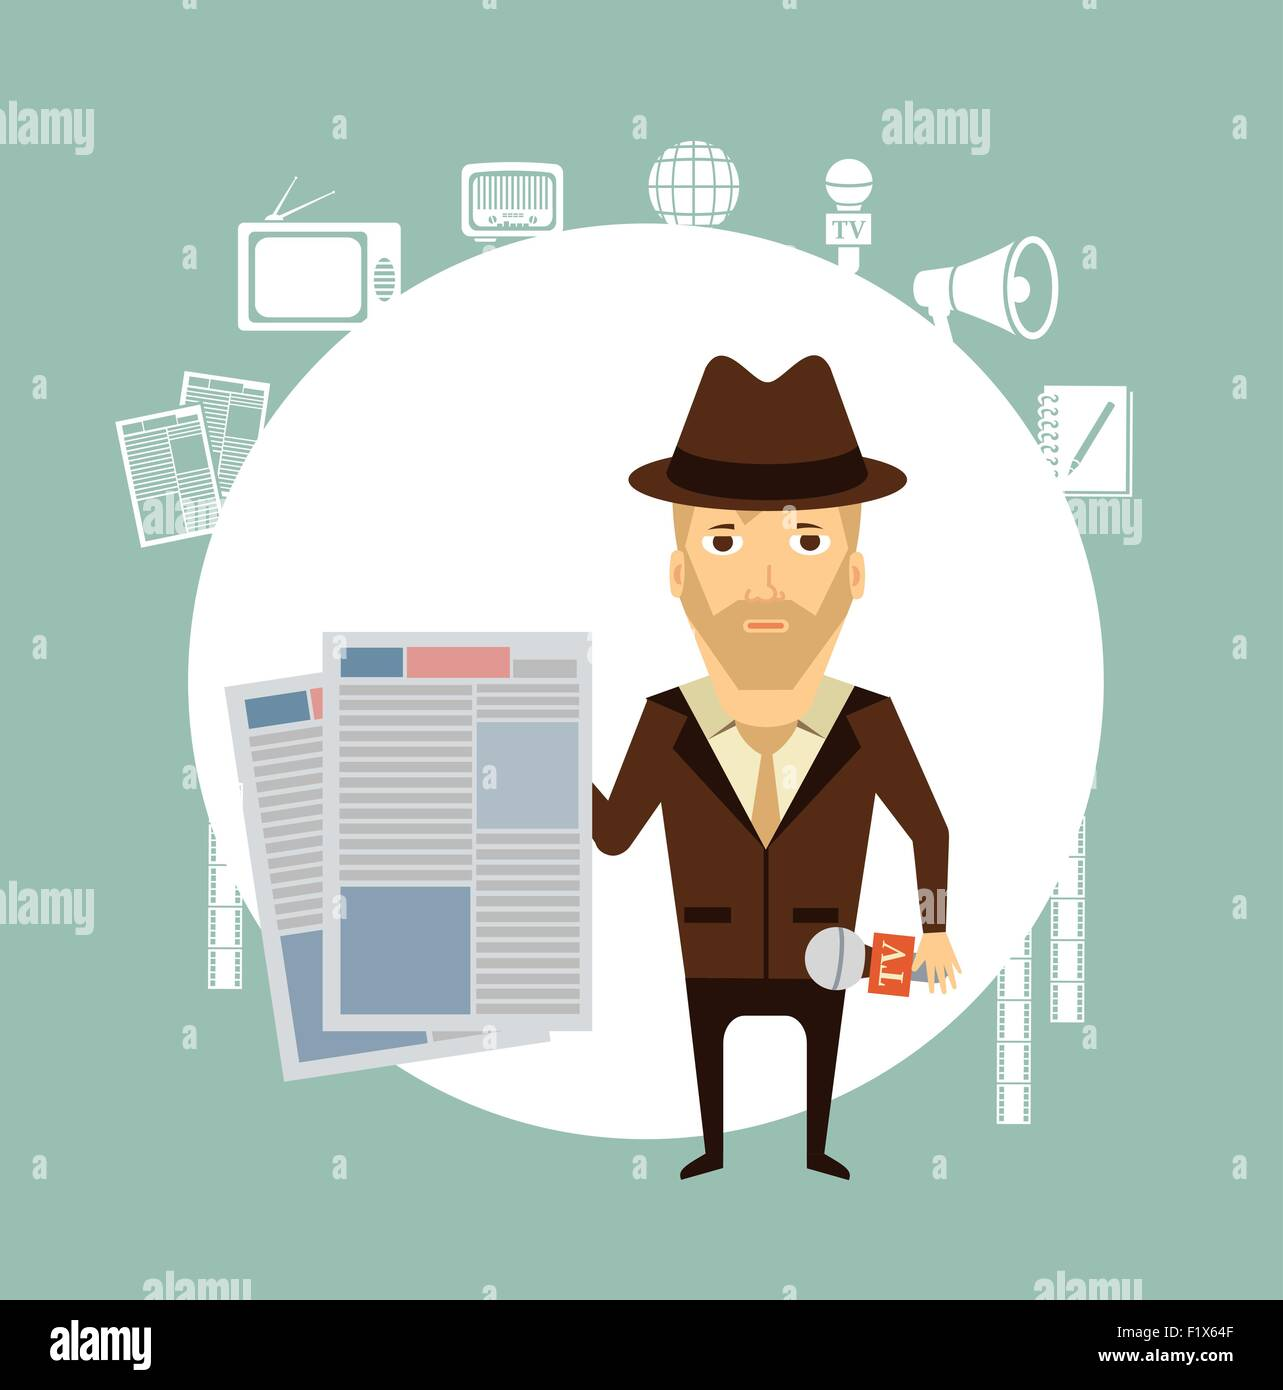 journalist holding a newspaper  illustration. Flat modern style vector design - Stock Image